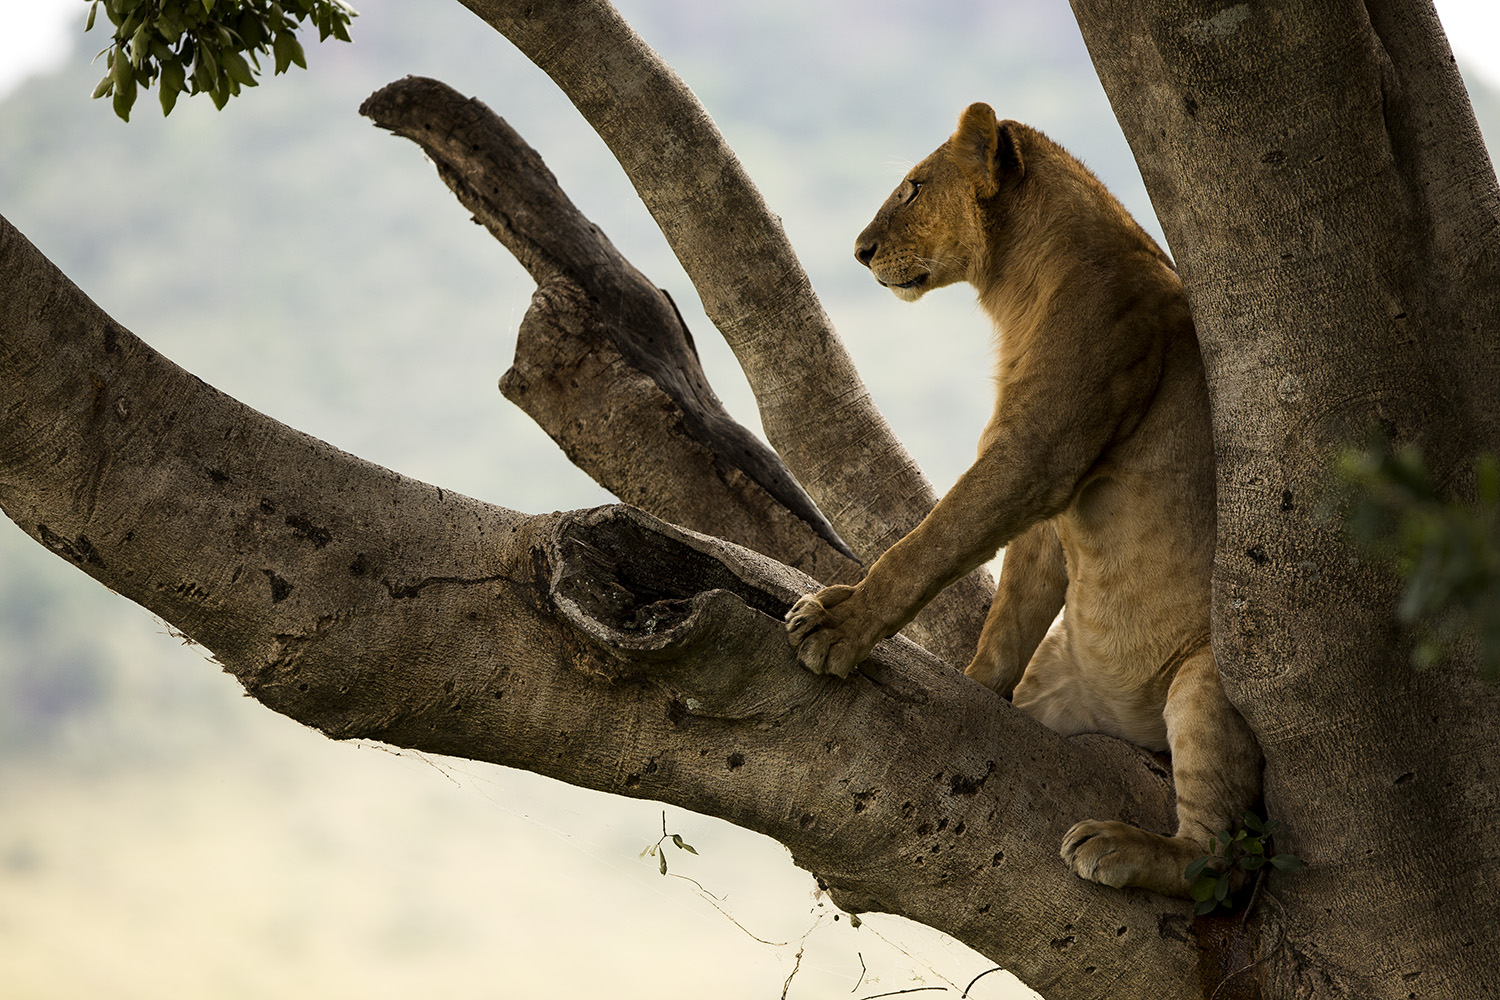 Lioness in tree sitting